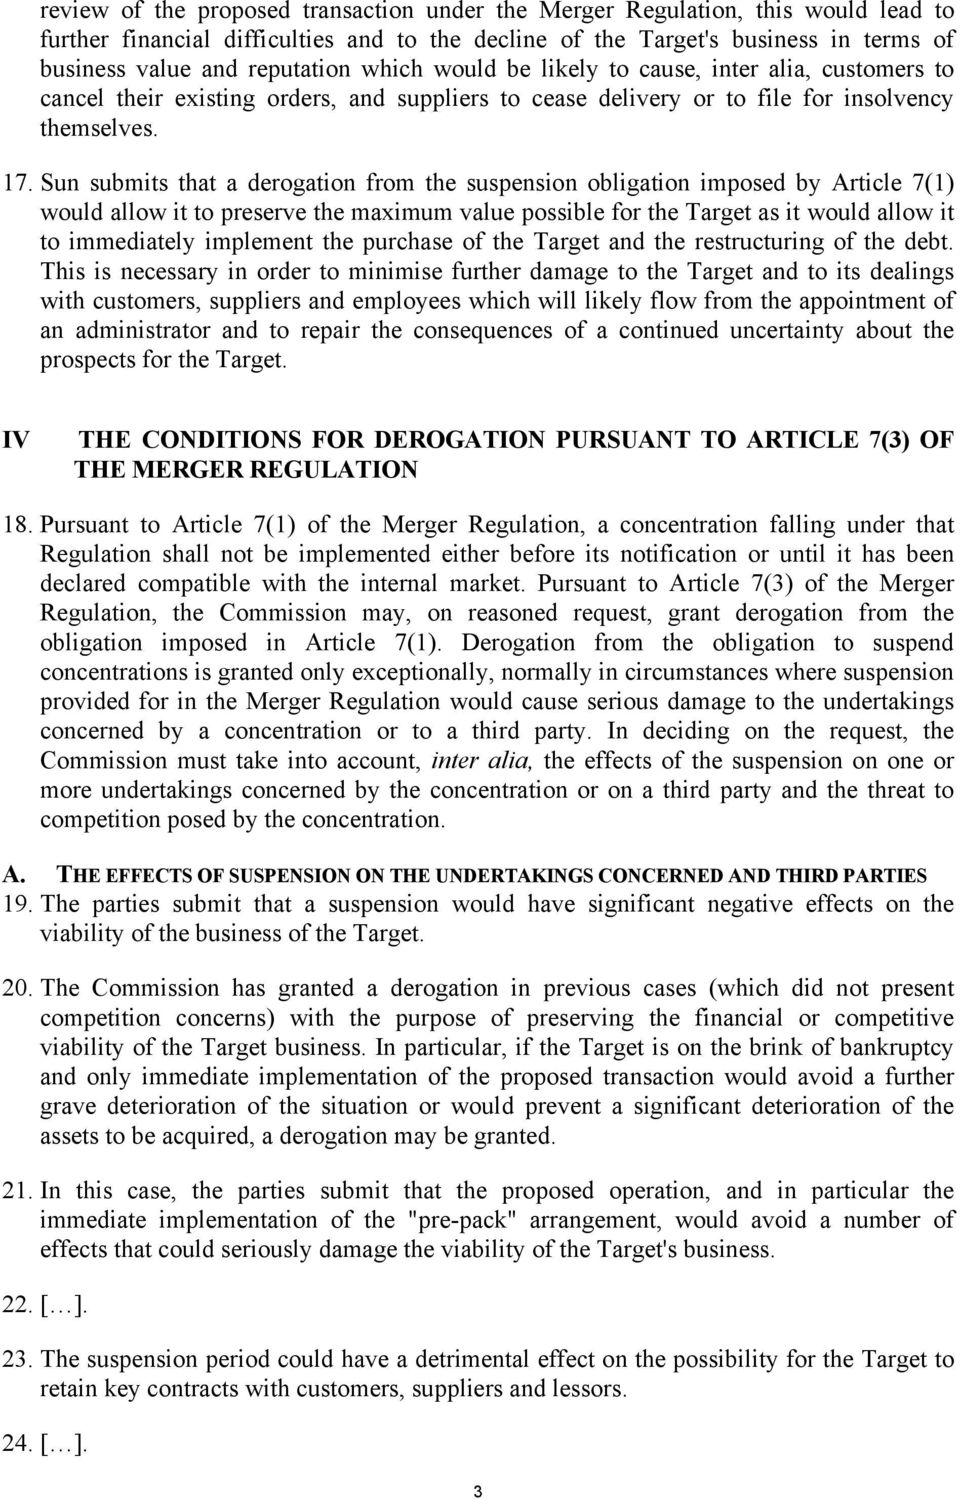 Sun submits that a derogation from the suspension obligation imposed by Article 7(1) would allow it to preserve the maximum value possible for the Target as it would allow it to immediately implement